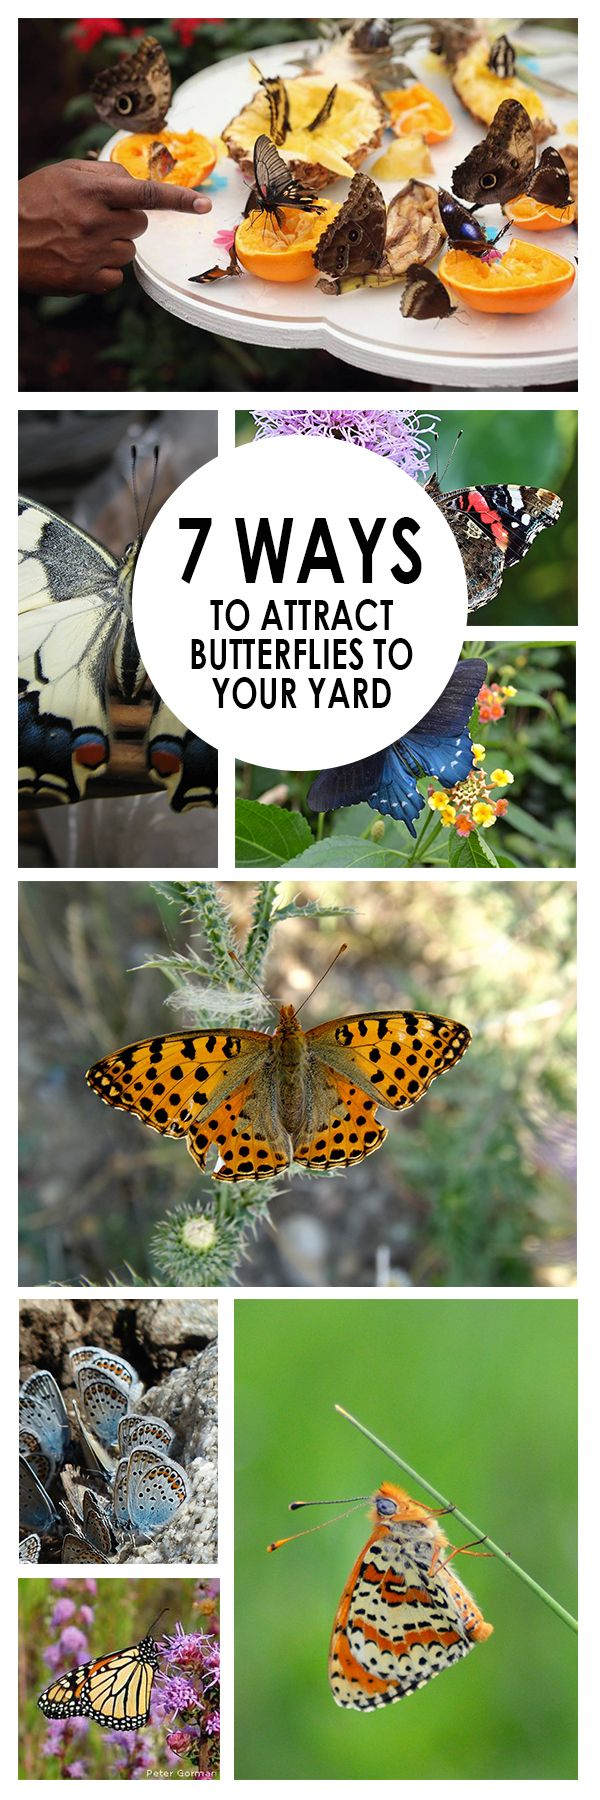 7 ways to attract butterflies to your yard yards butterfly and